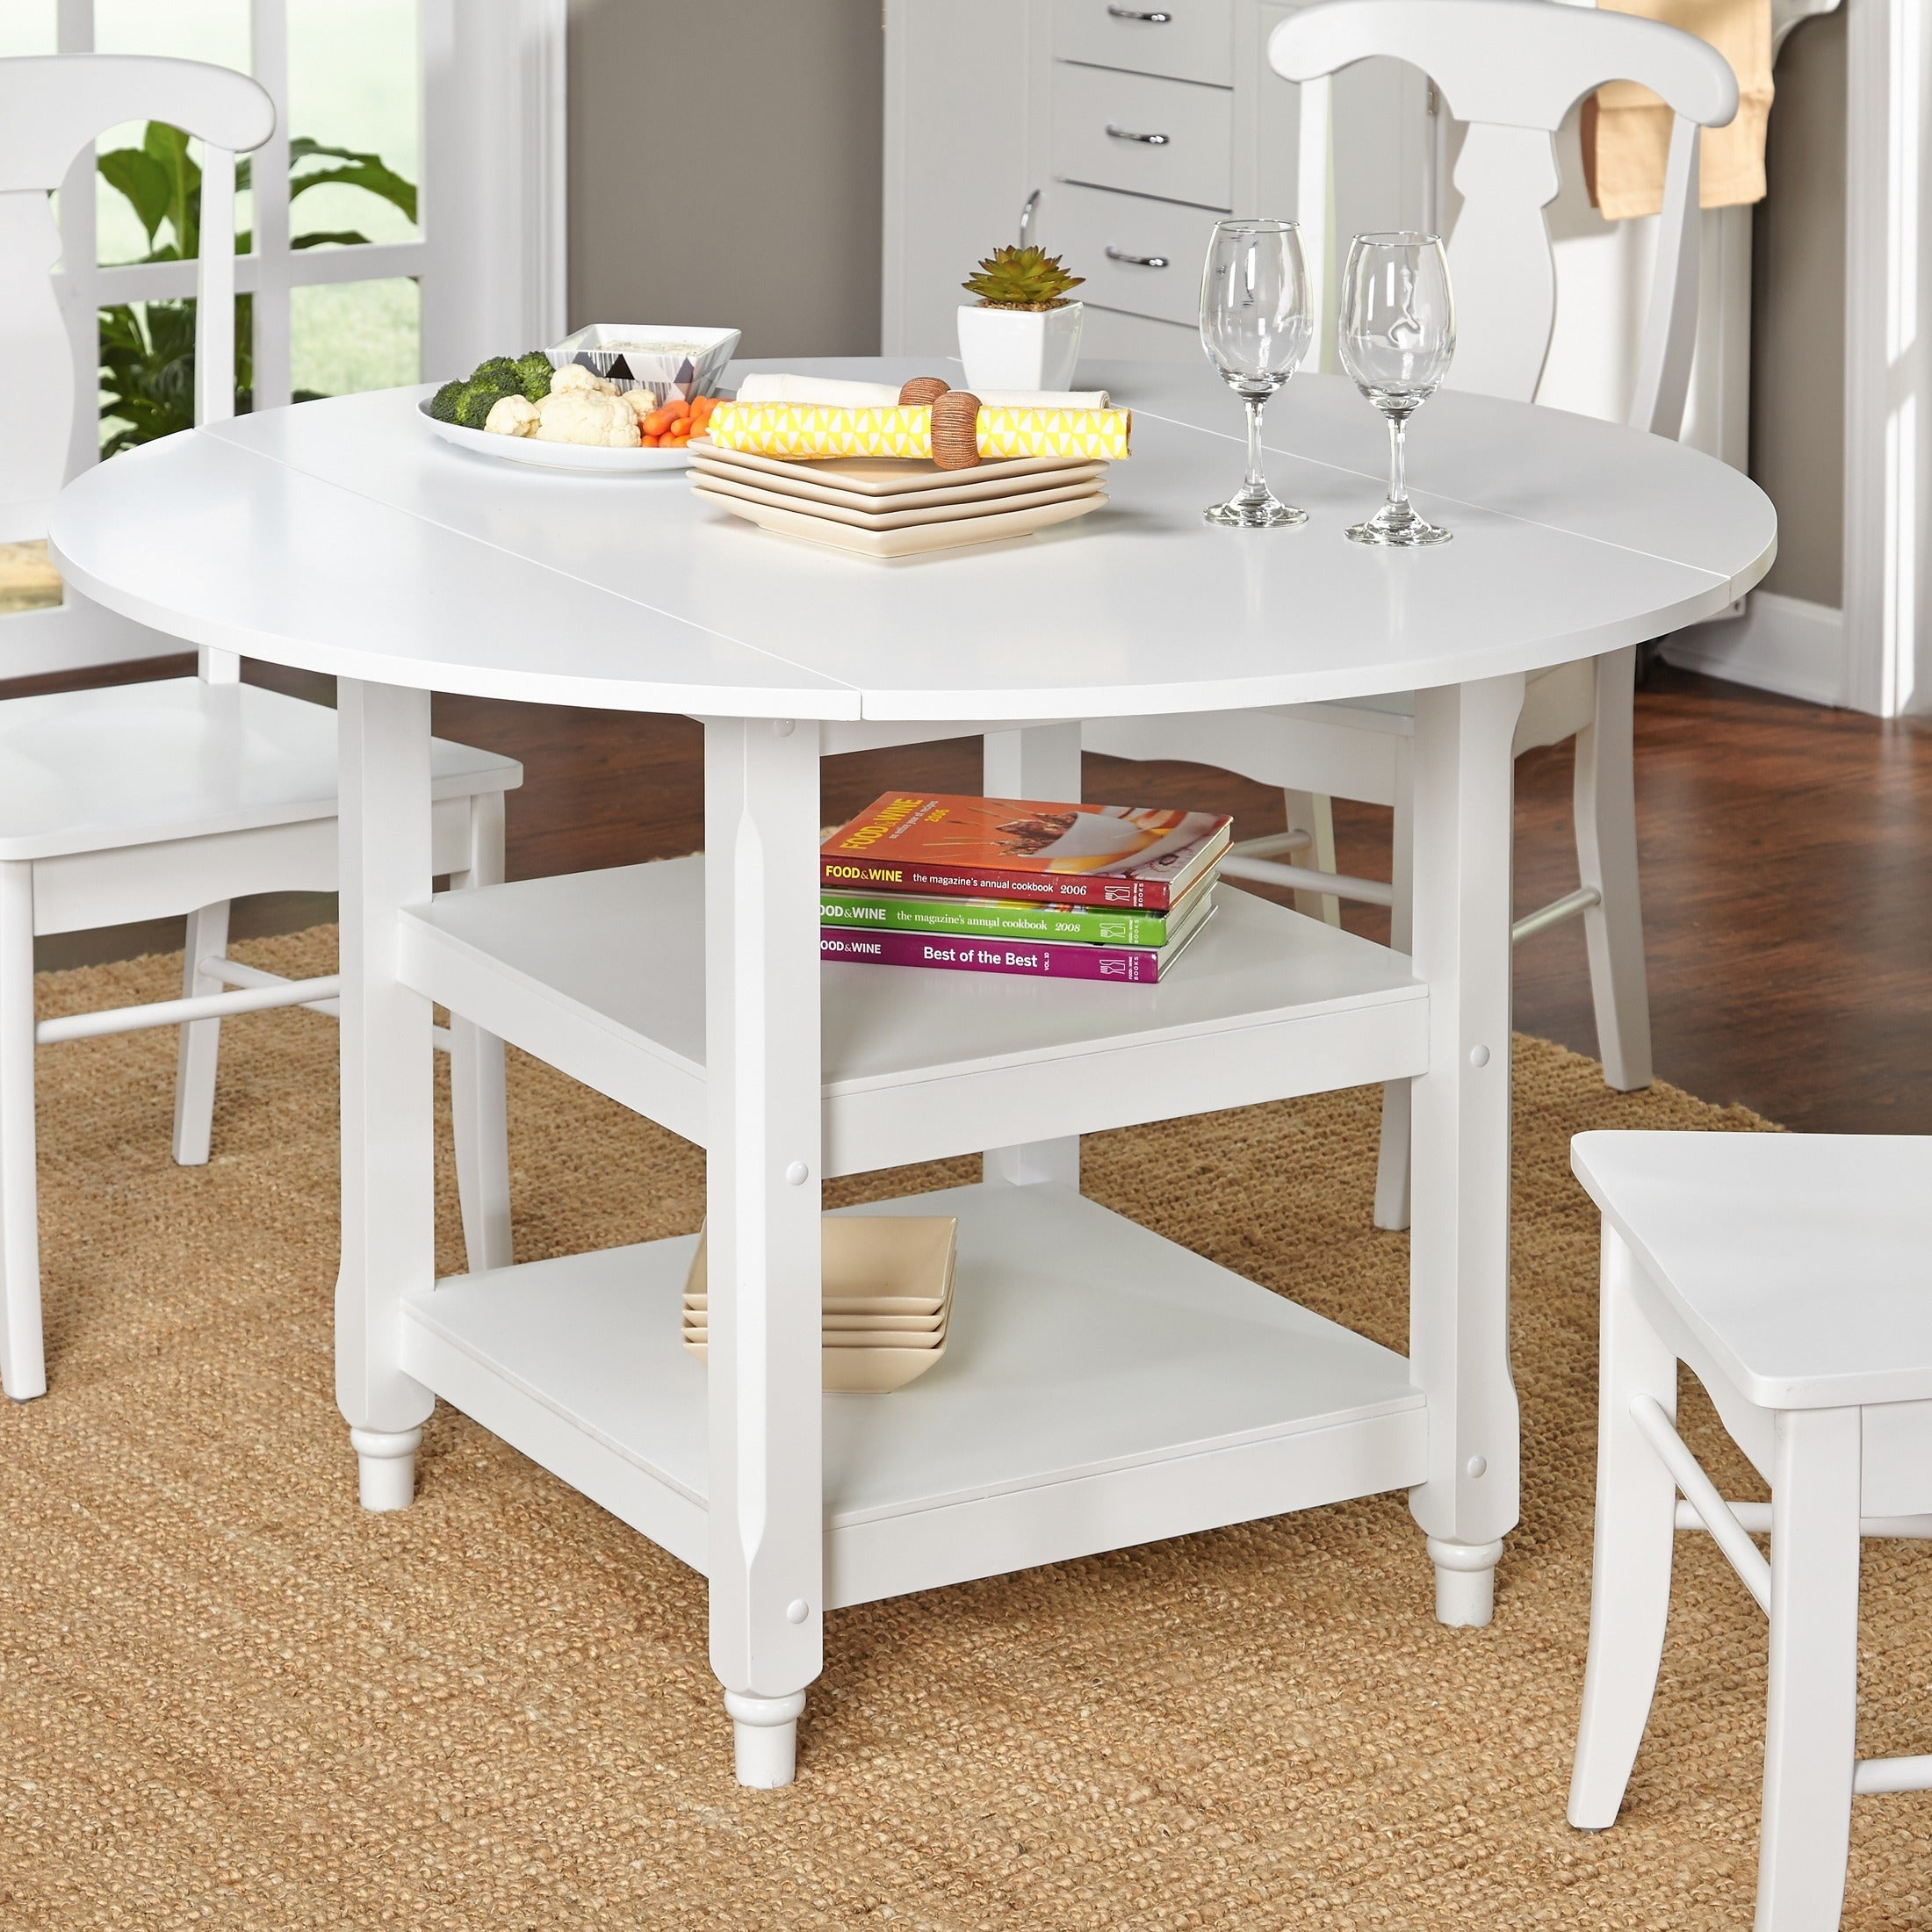 table piece round remodel visionexchange co with livings dining regard to room set living